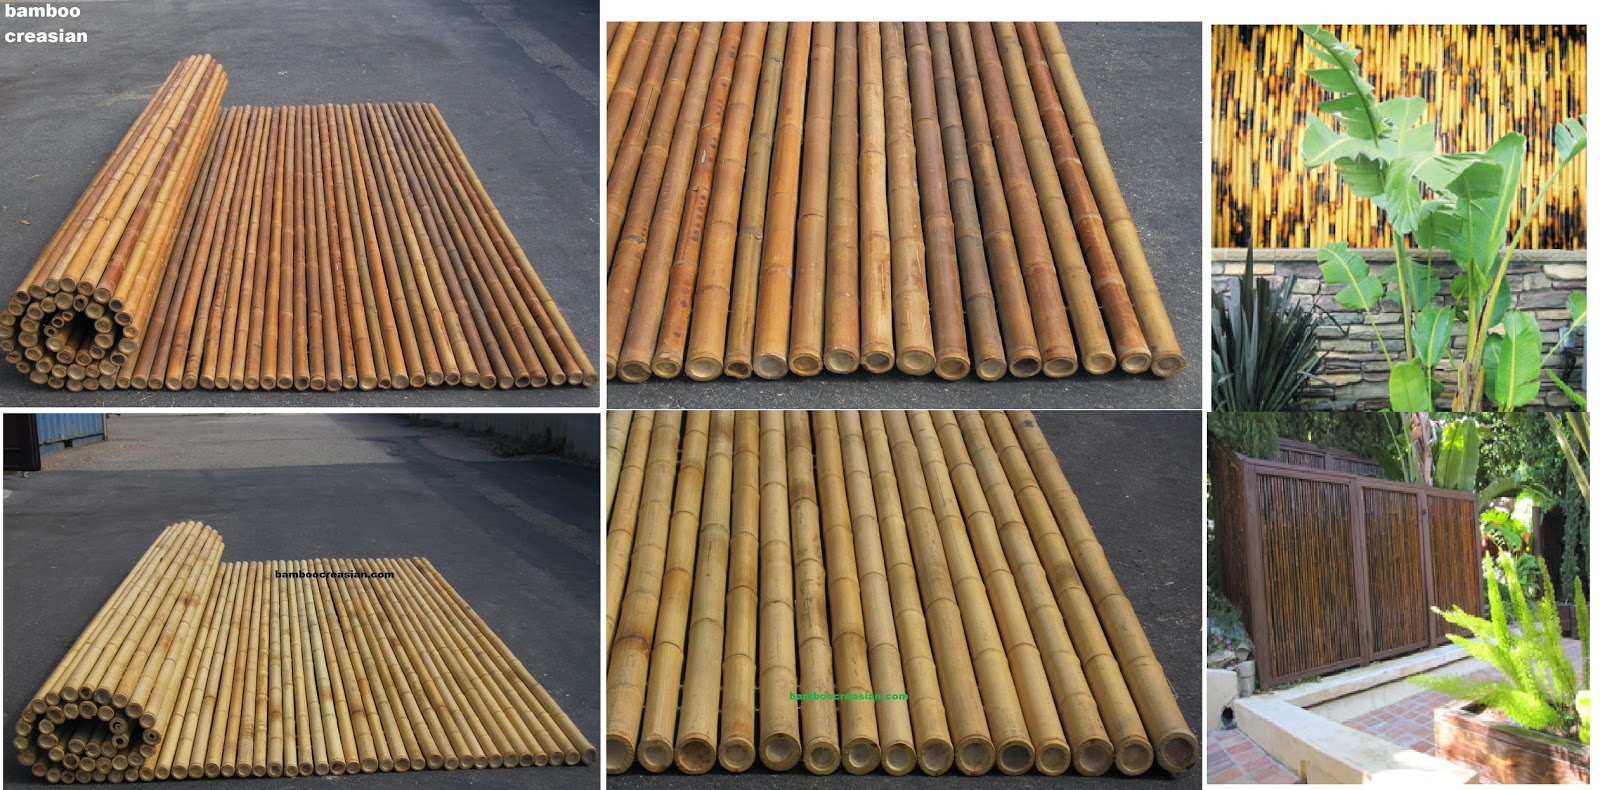 Allbamboo product4sale-decorative bamboo~fencing/wainscot-ply ...